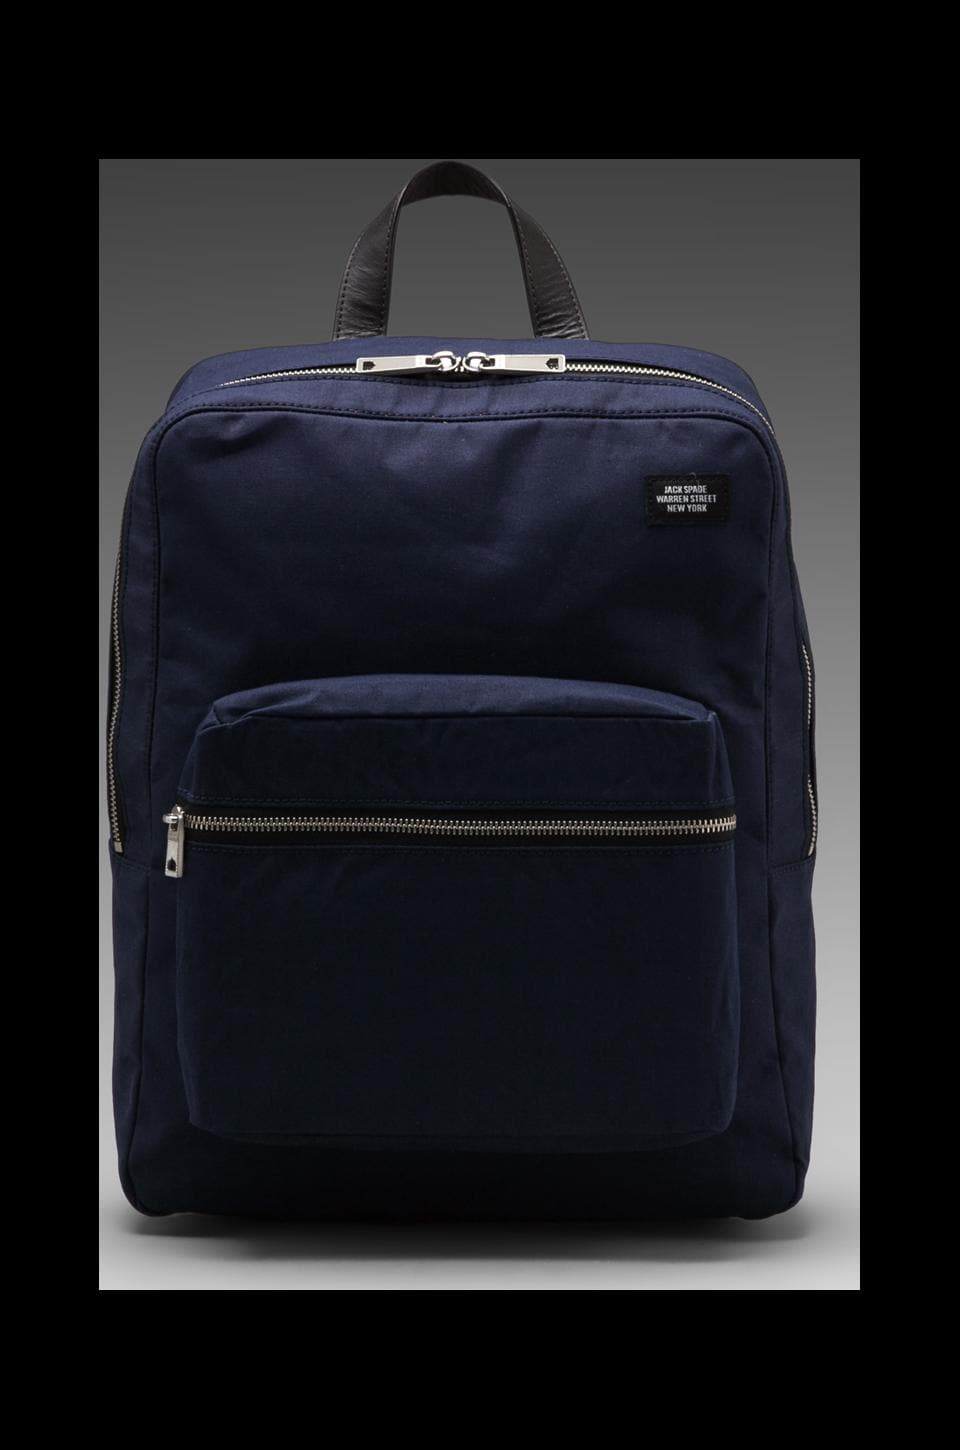 Jack Spade Foundation Canvas Backpack in Navy/Orange